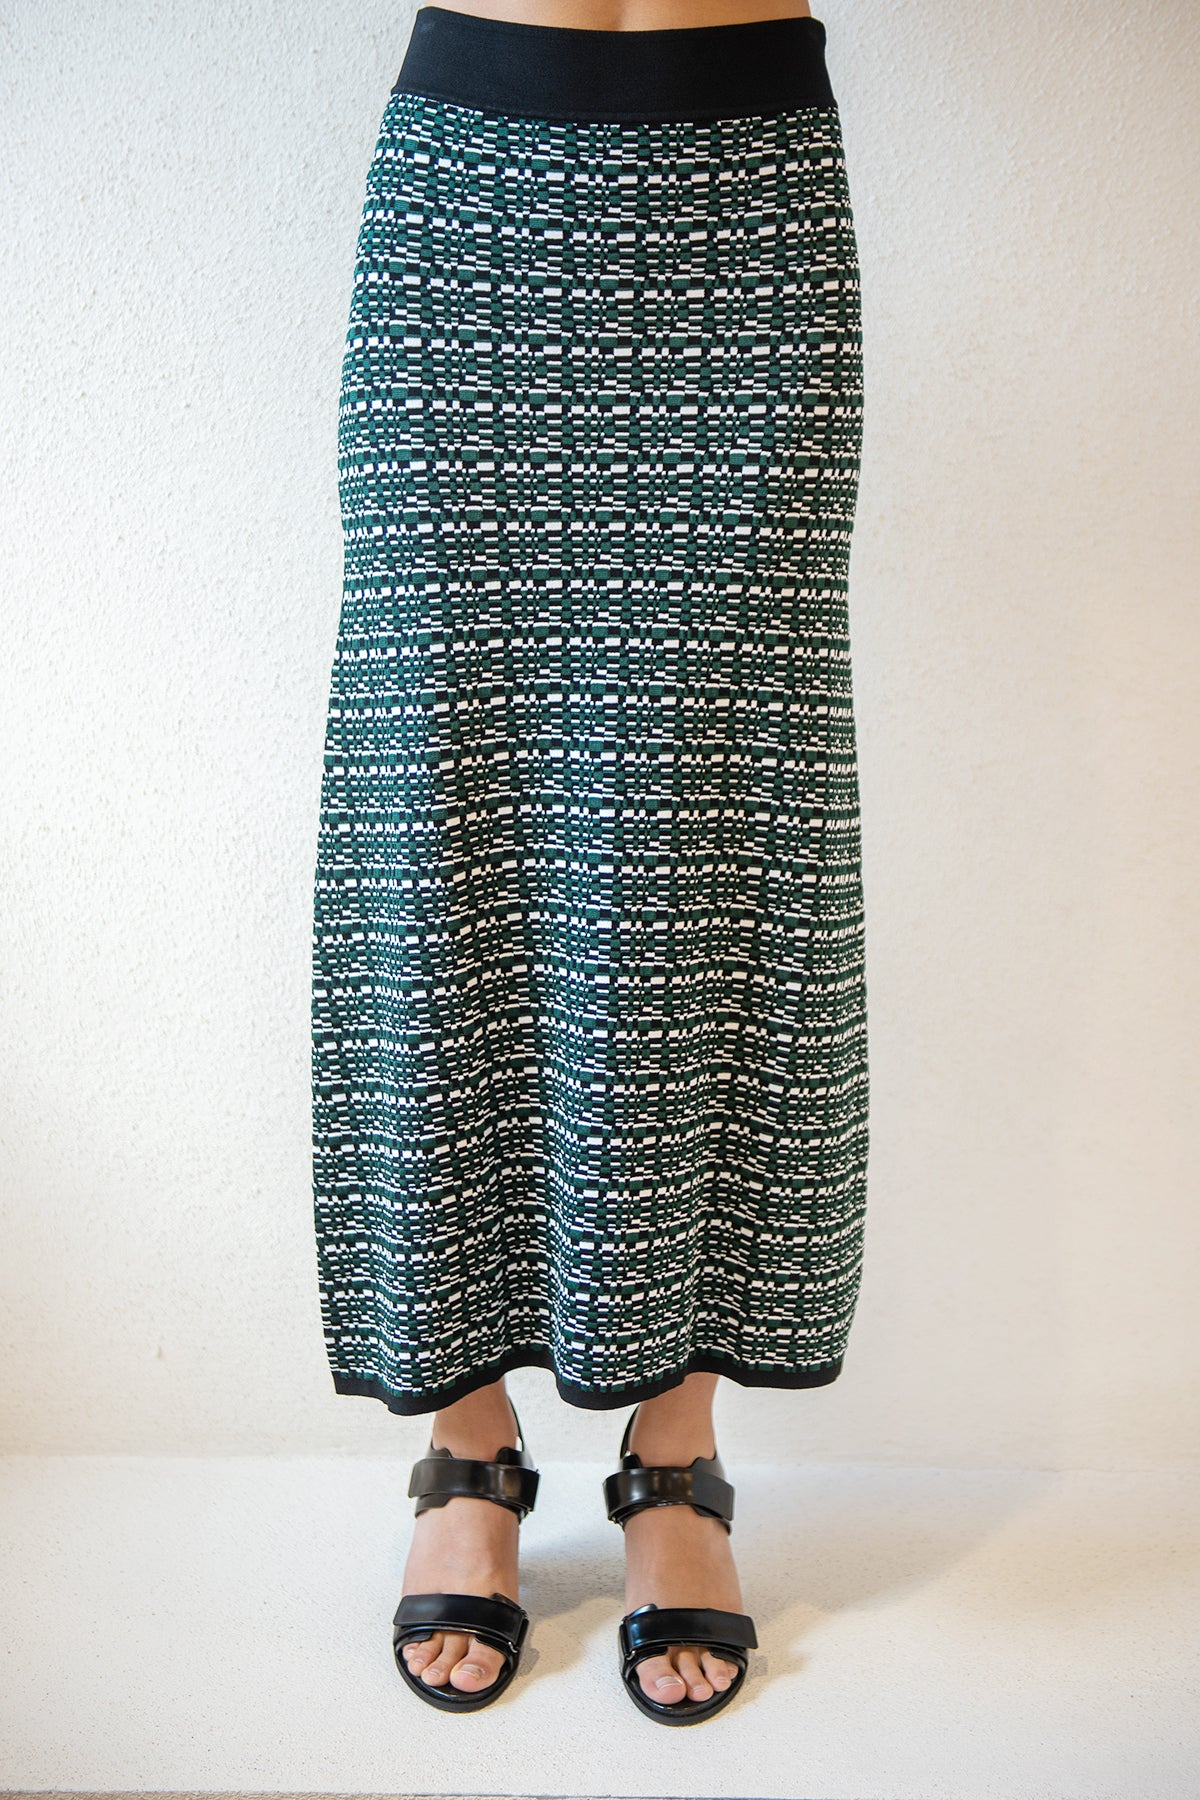 GAUCHERE - raquel skirt, pine green print